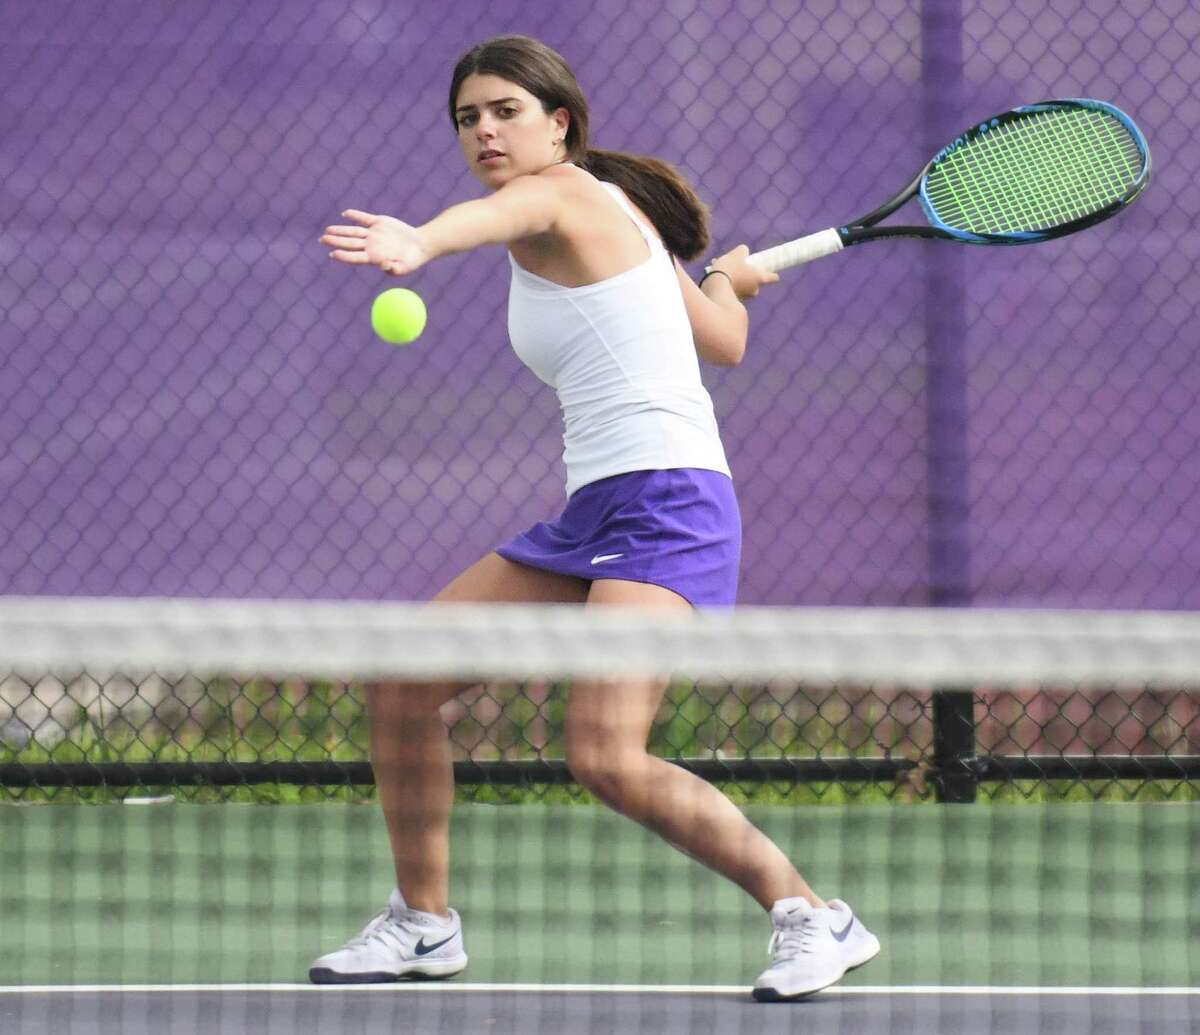 Westhill's Martina Kaba returns a shot during a match against Ridgefield in Stamford on Monday.